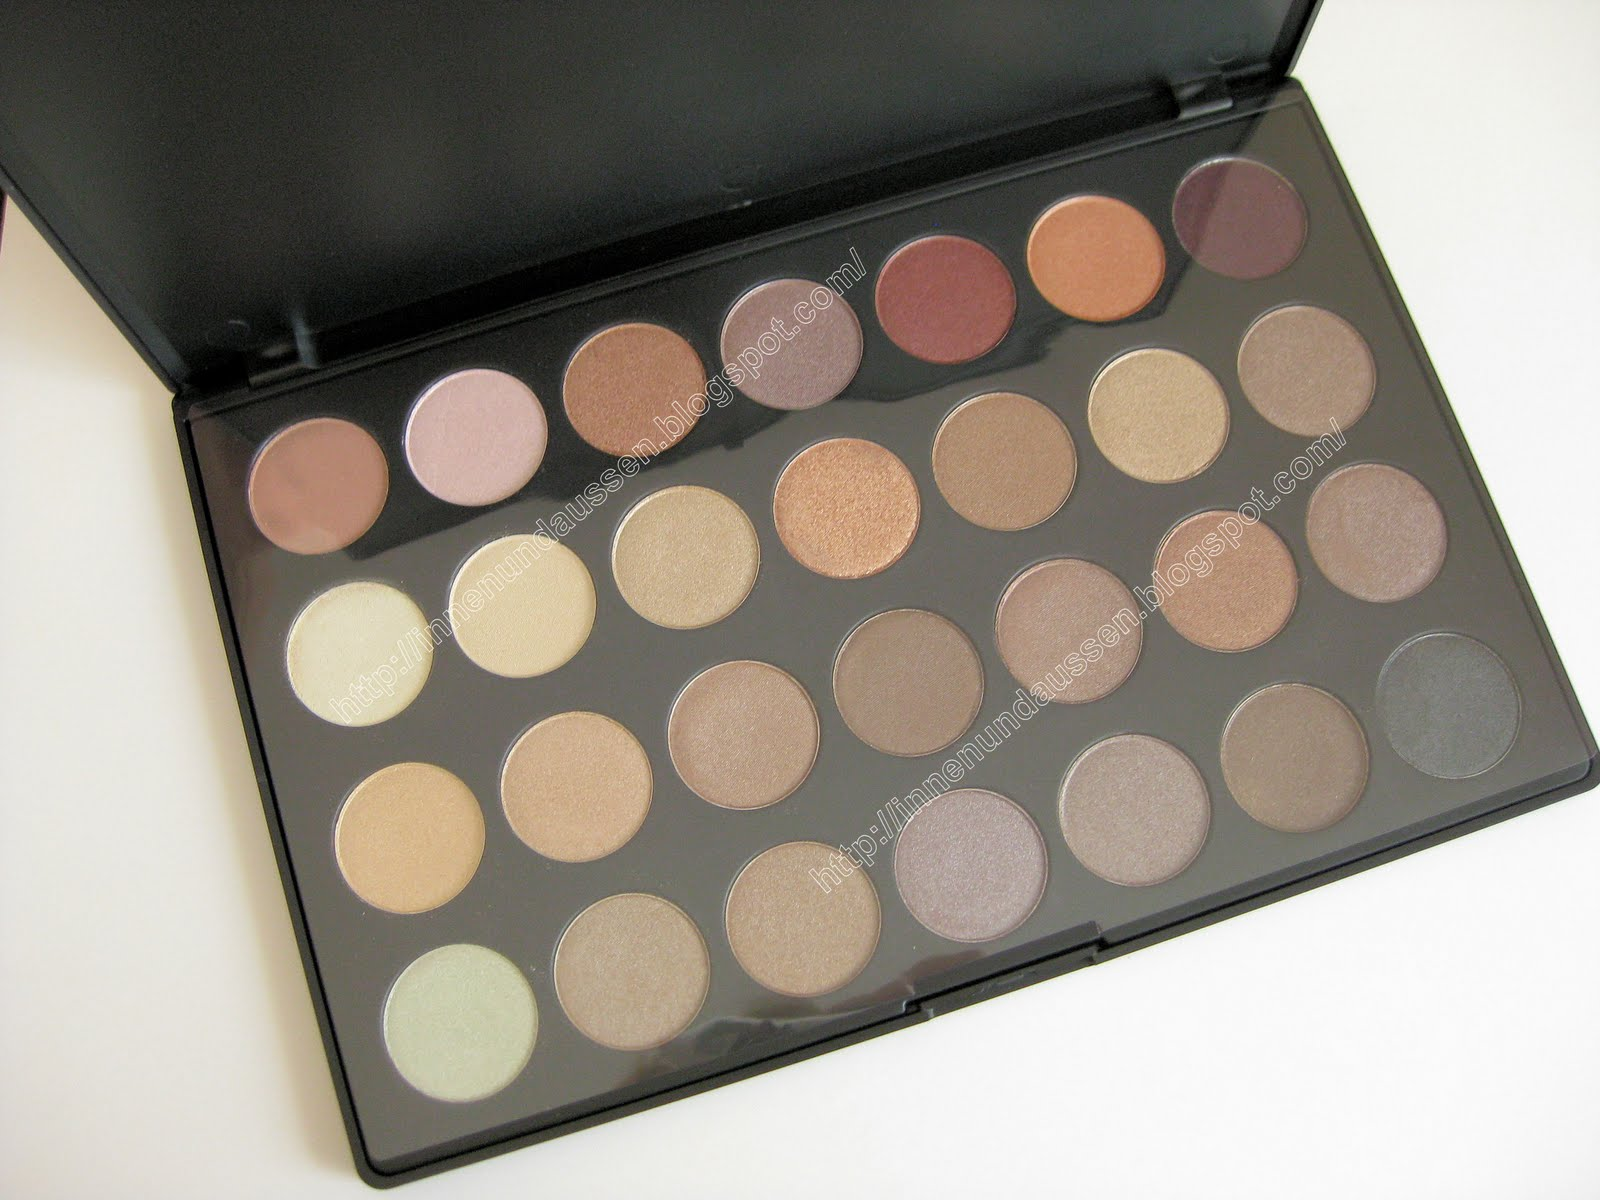 Zoeva Nude Spectrum Palette - Swatches and Review